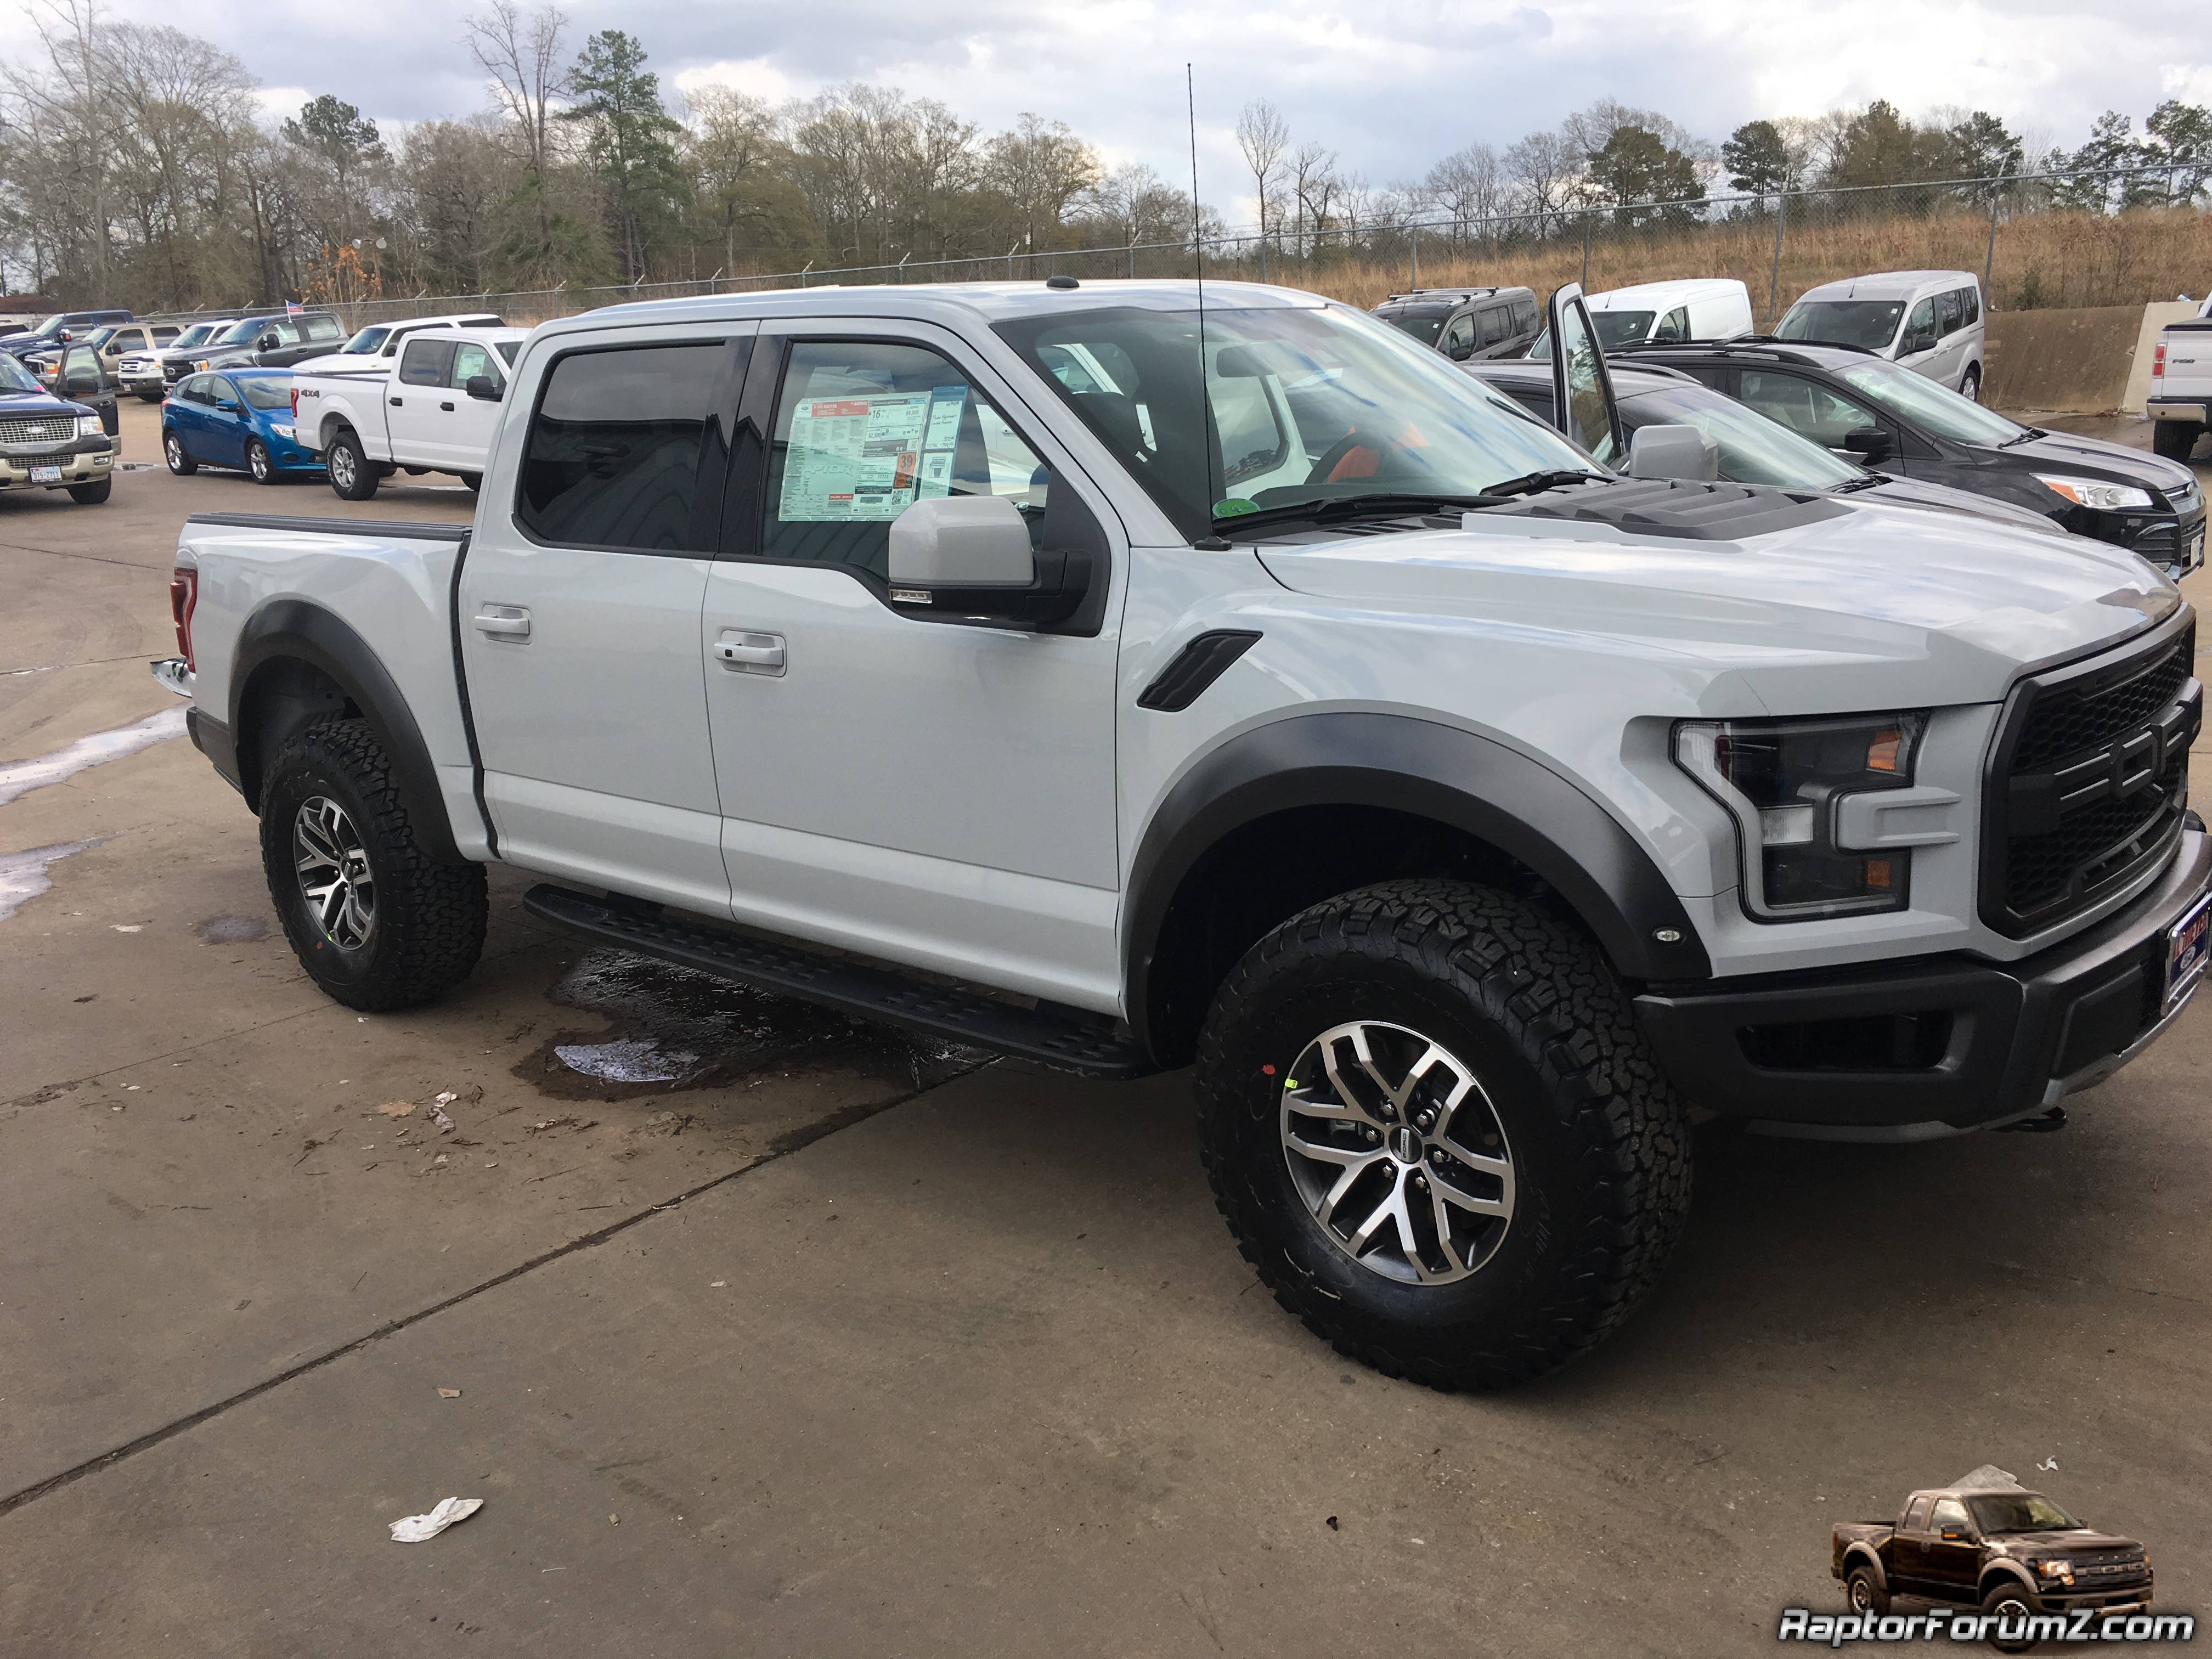 Raptor 2017 Avalanche Grey >> Ford Raptor Avalanche | 2017, 2018, 2019 Ford Price, Release Date, Reviews